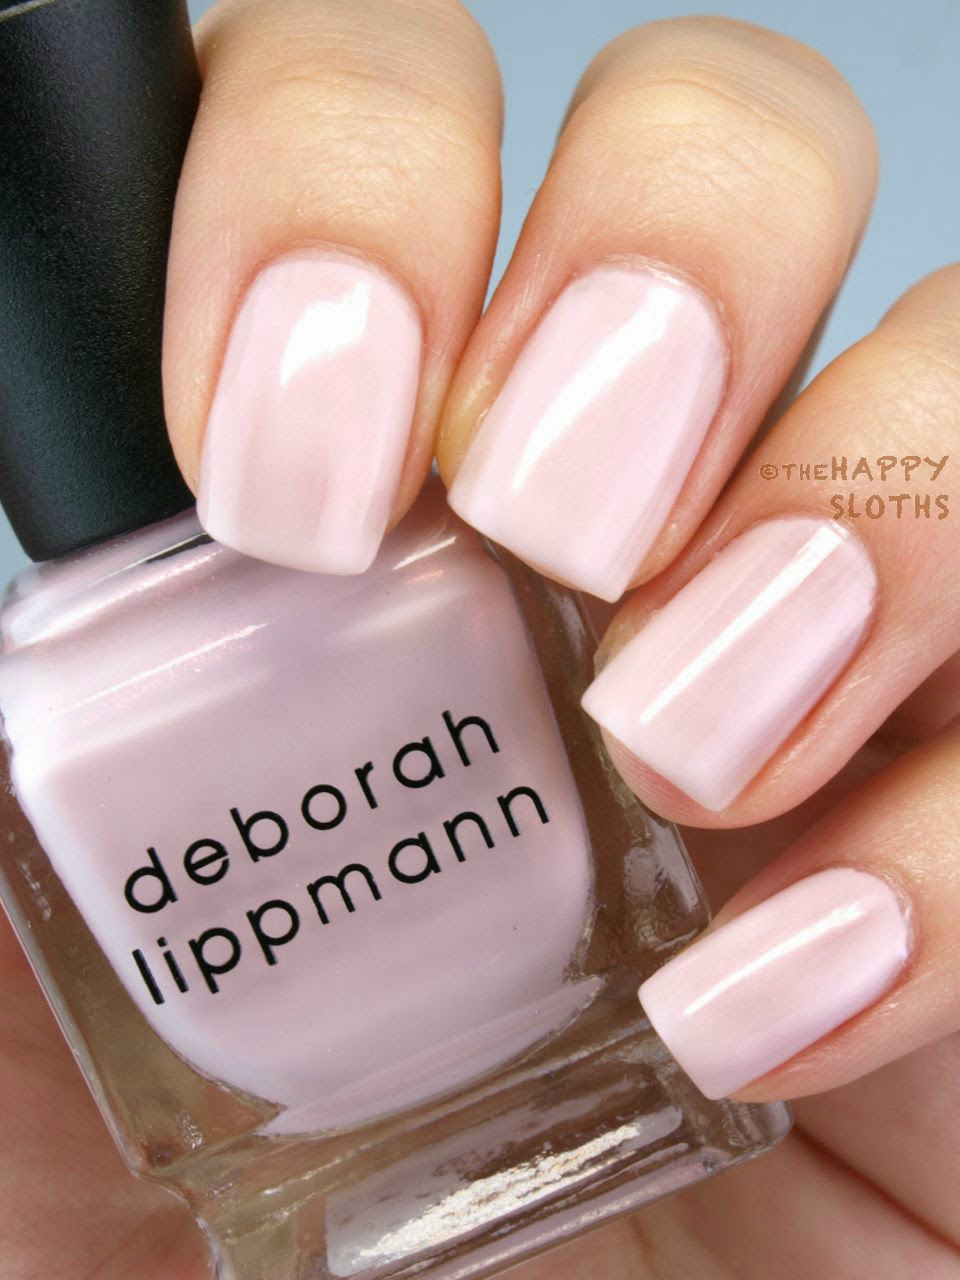 Deborah Lippmann Spring 2015 Whisper Collection: Review and Swatches